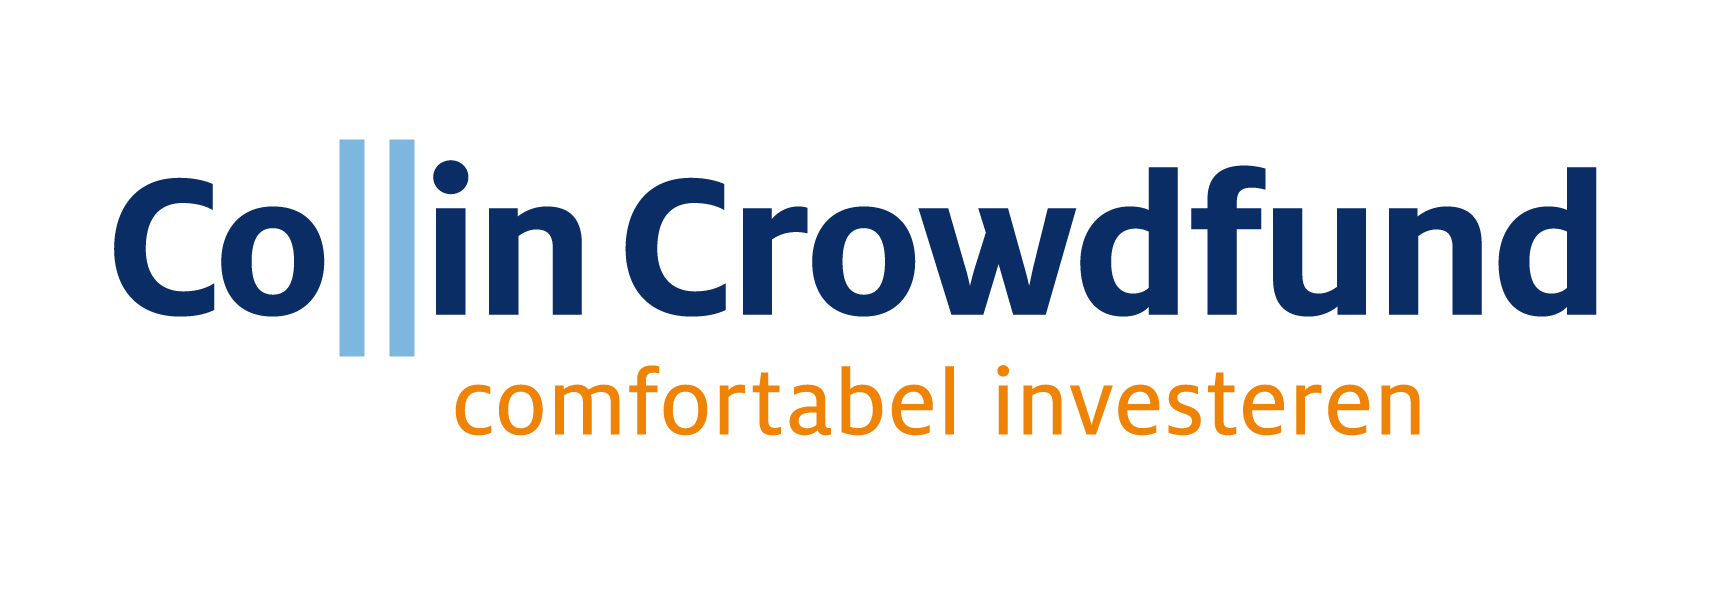 Logo Collin Crowdfund